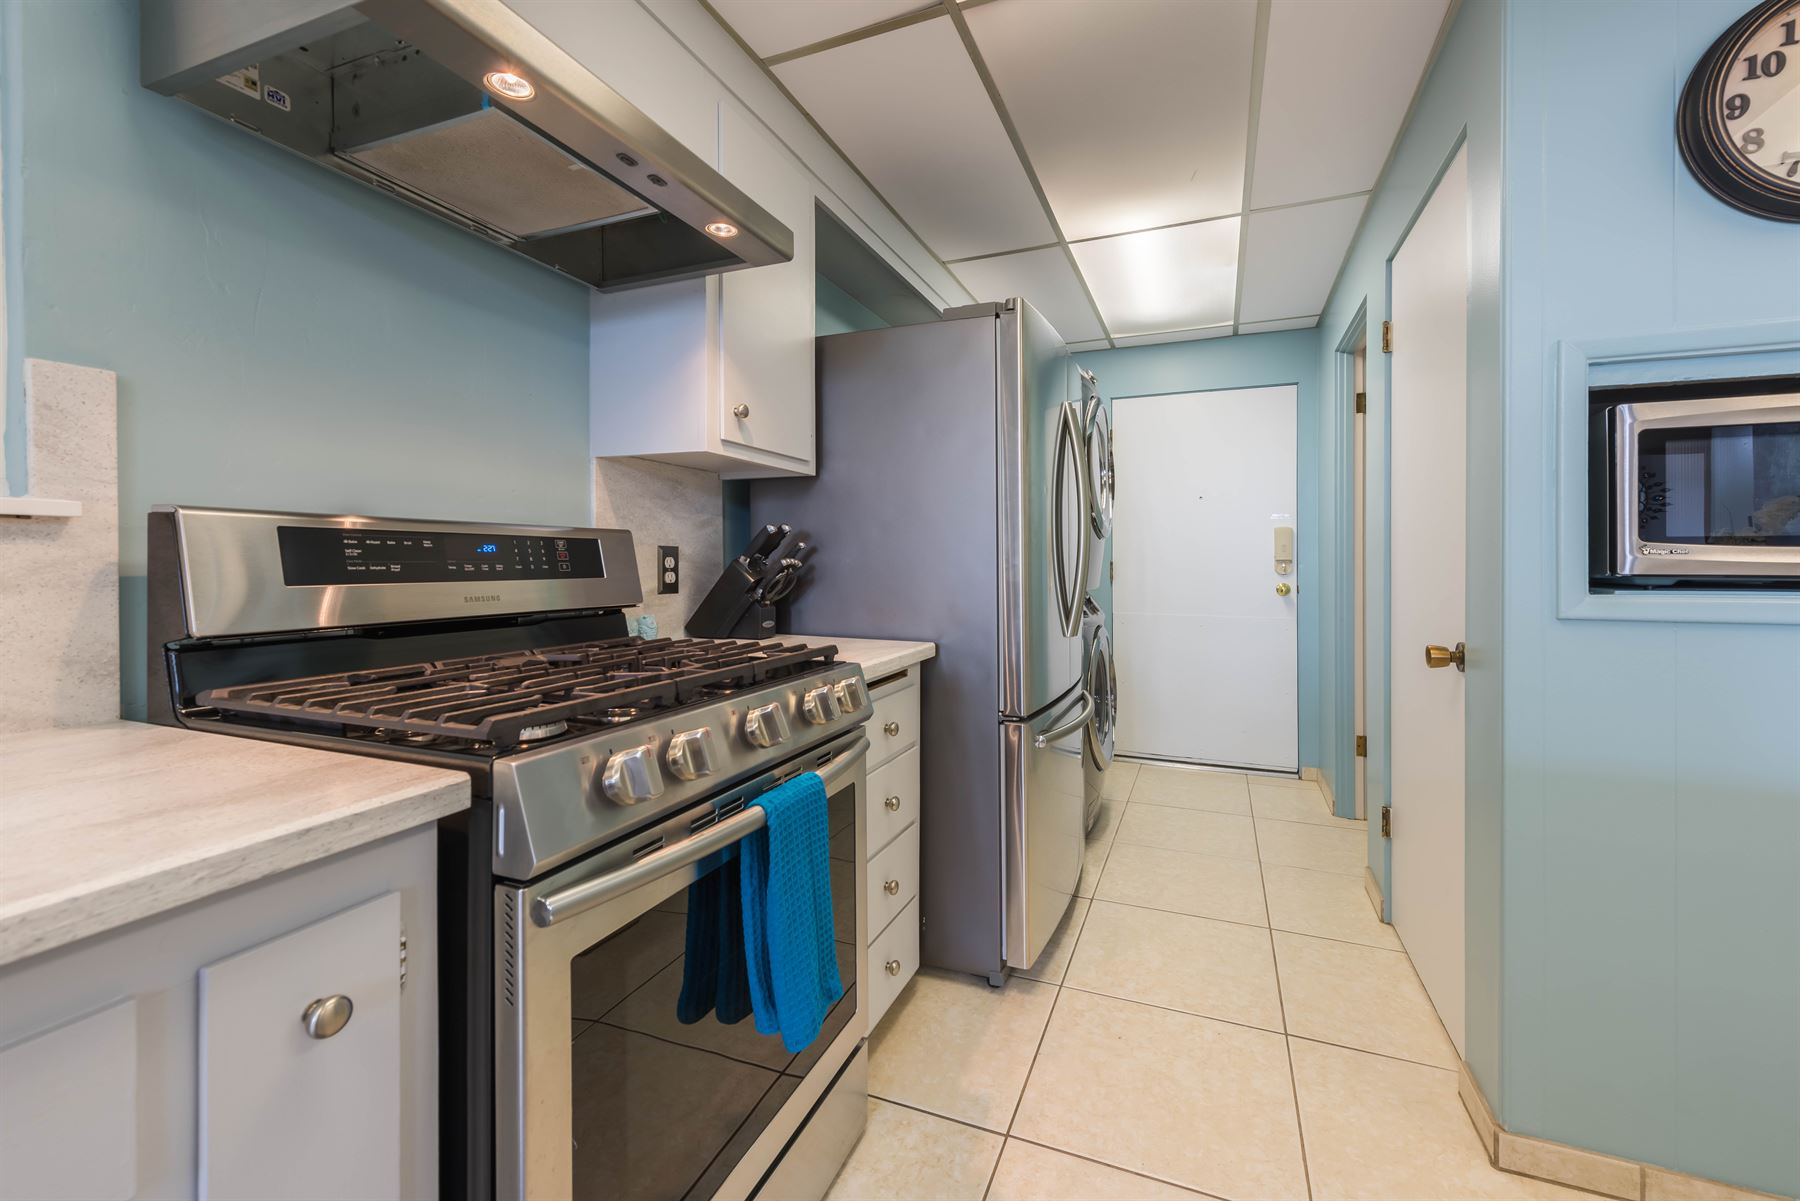 Oceanview Hideaway - Interior - Kitchen with view of stove and hallway that has the fridge and the stacked washer/dryer